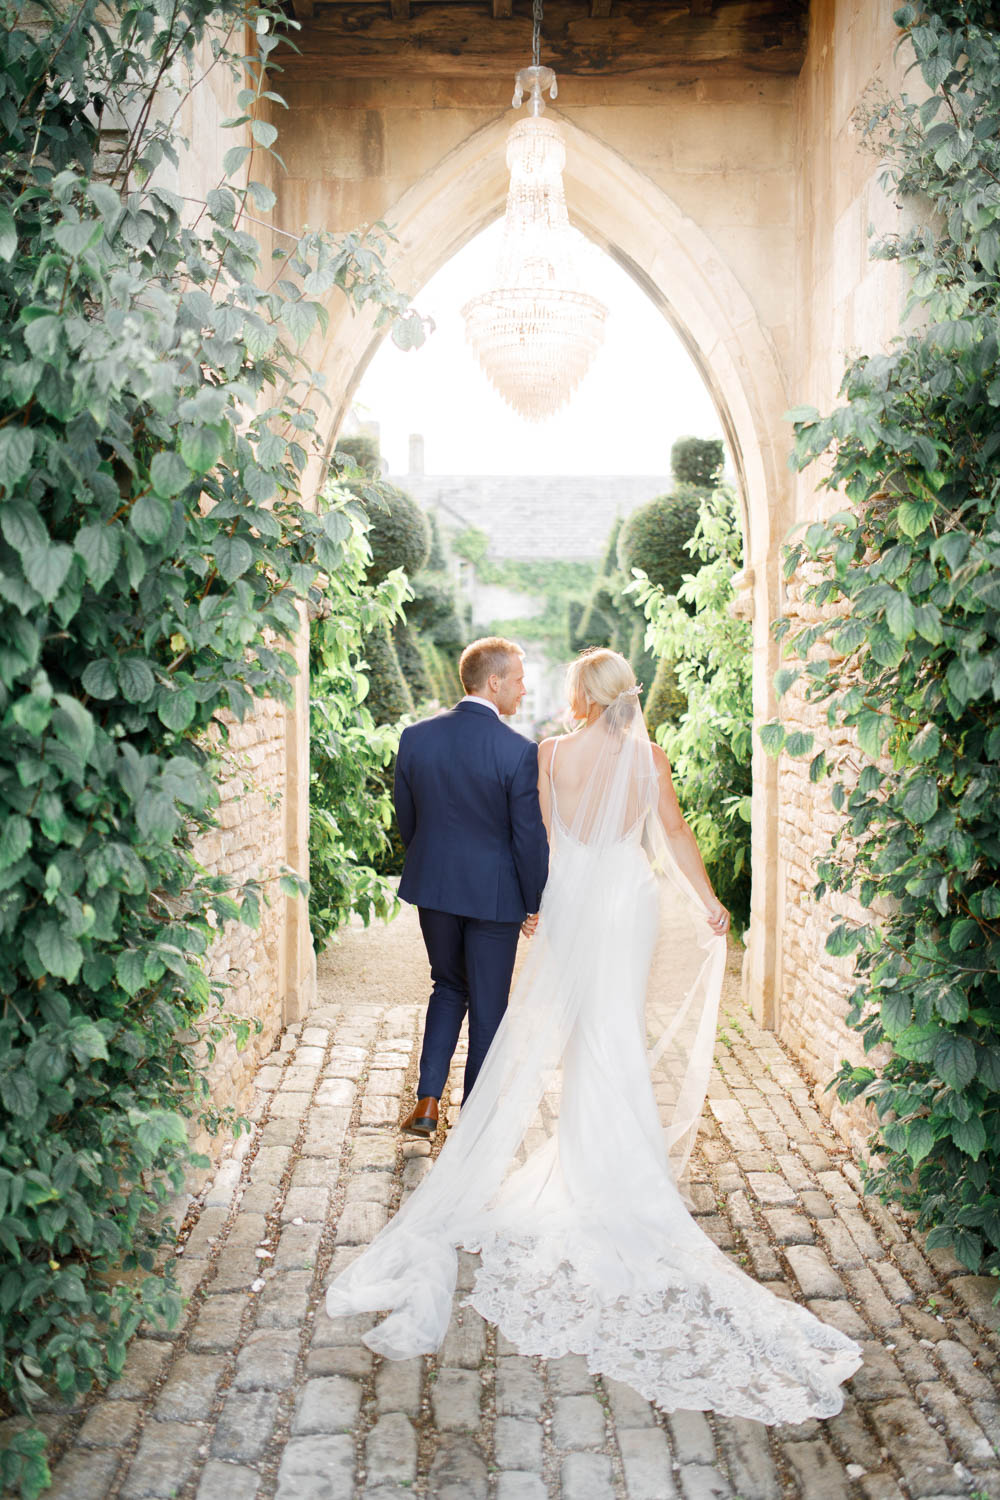 Fine Art Wedding Photography at the Lost Orangery